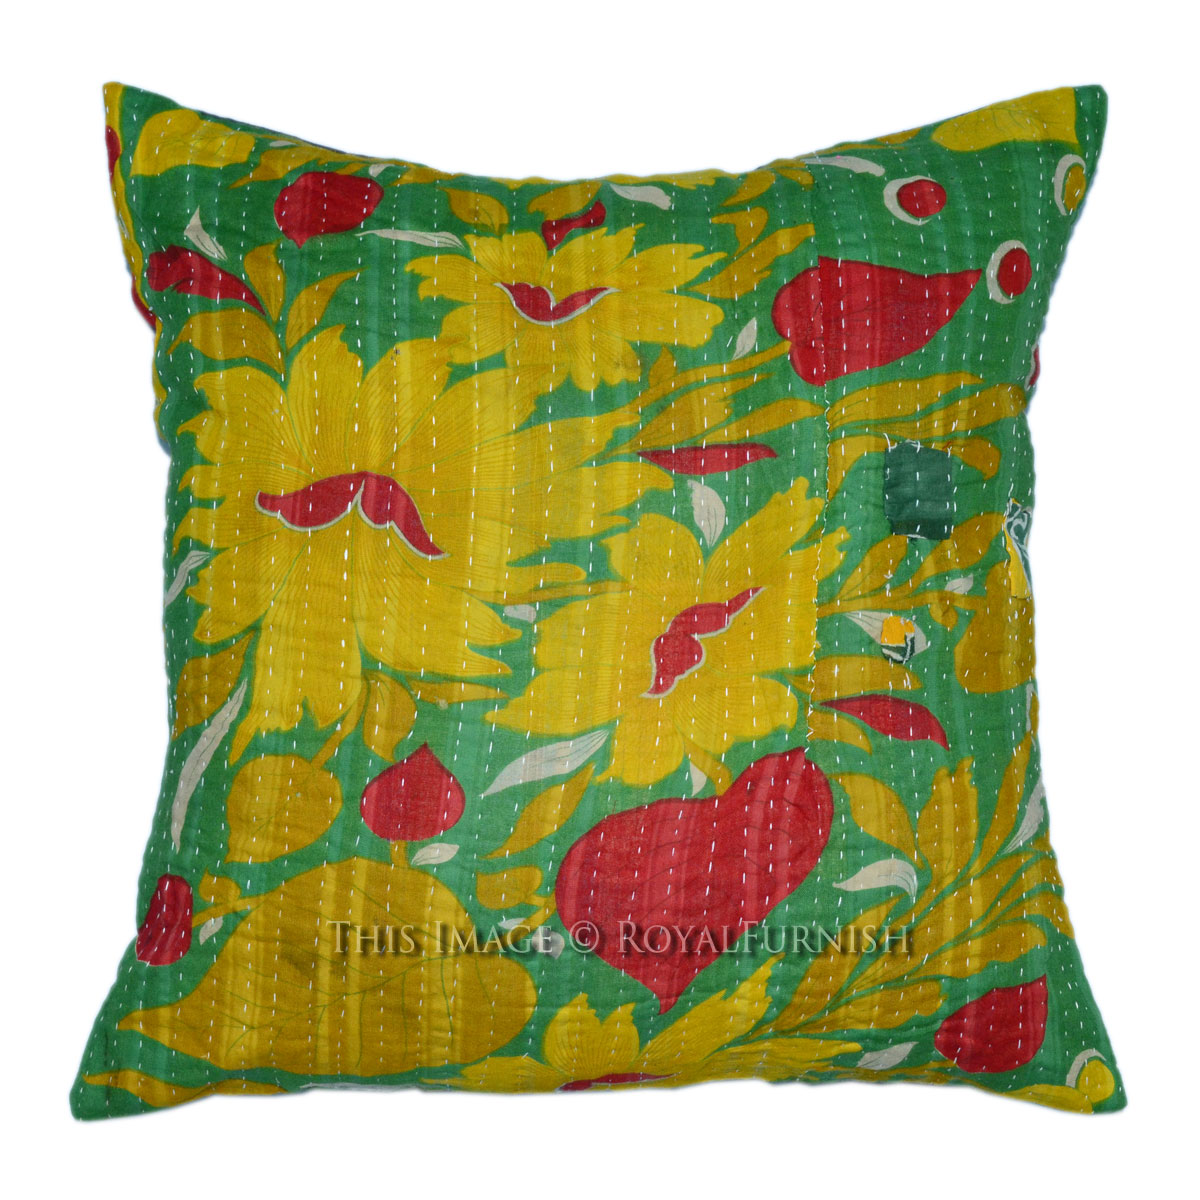 Vintage Decorative Pillow : 40x40 Cm. Decorative & Accent Vintage Kantha Throw Pillow Case - RoyalFurnish.com